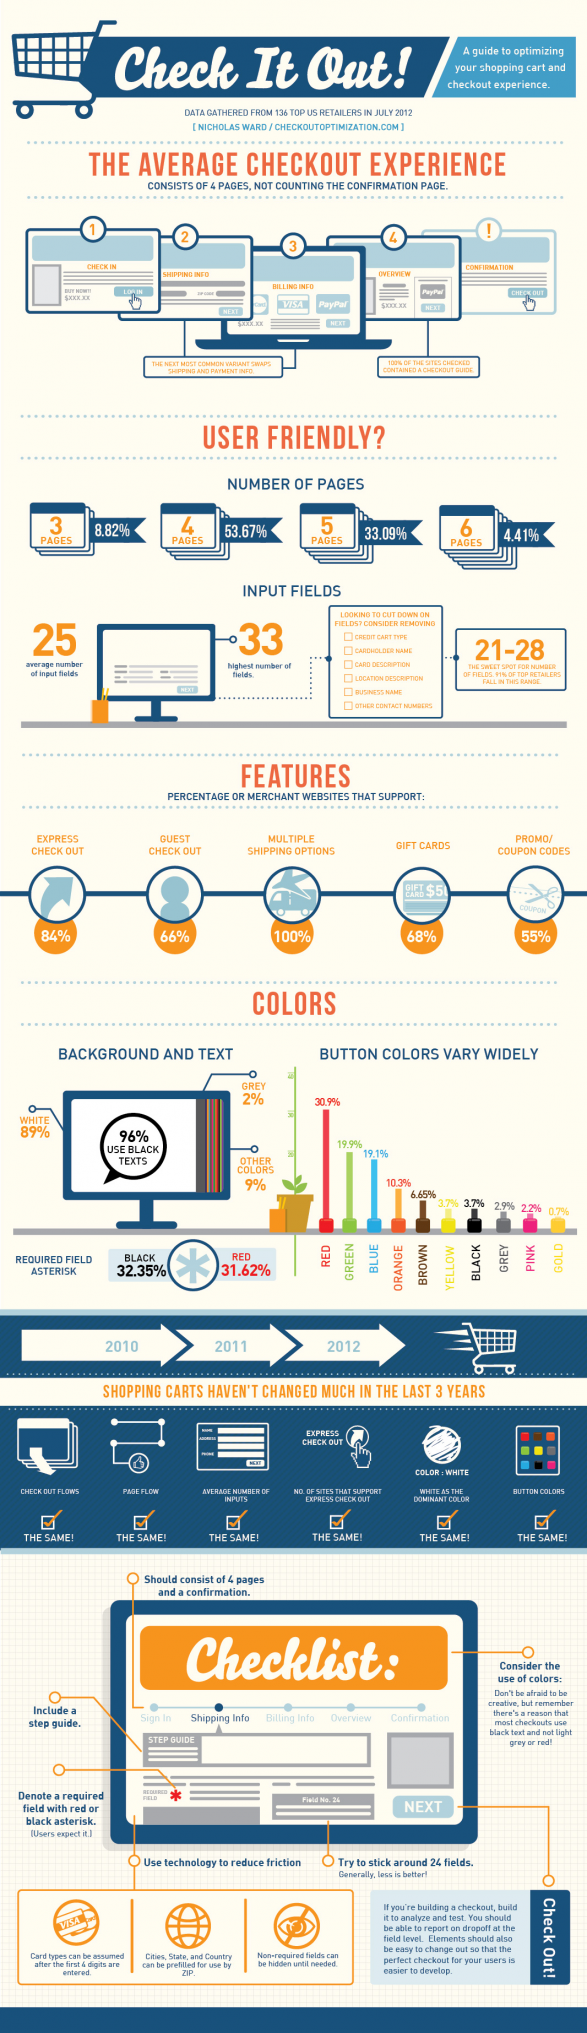 Checkout / Shopping Cart Optimization Infographic